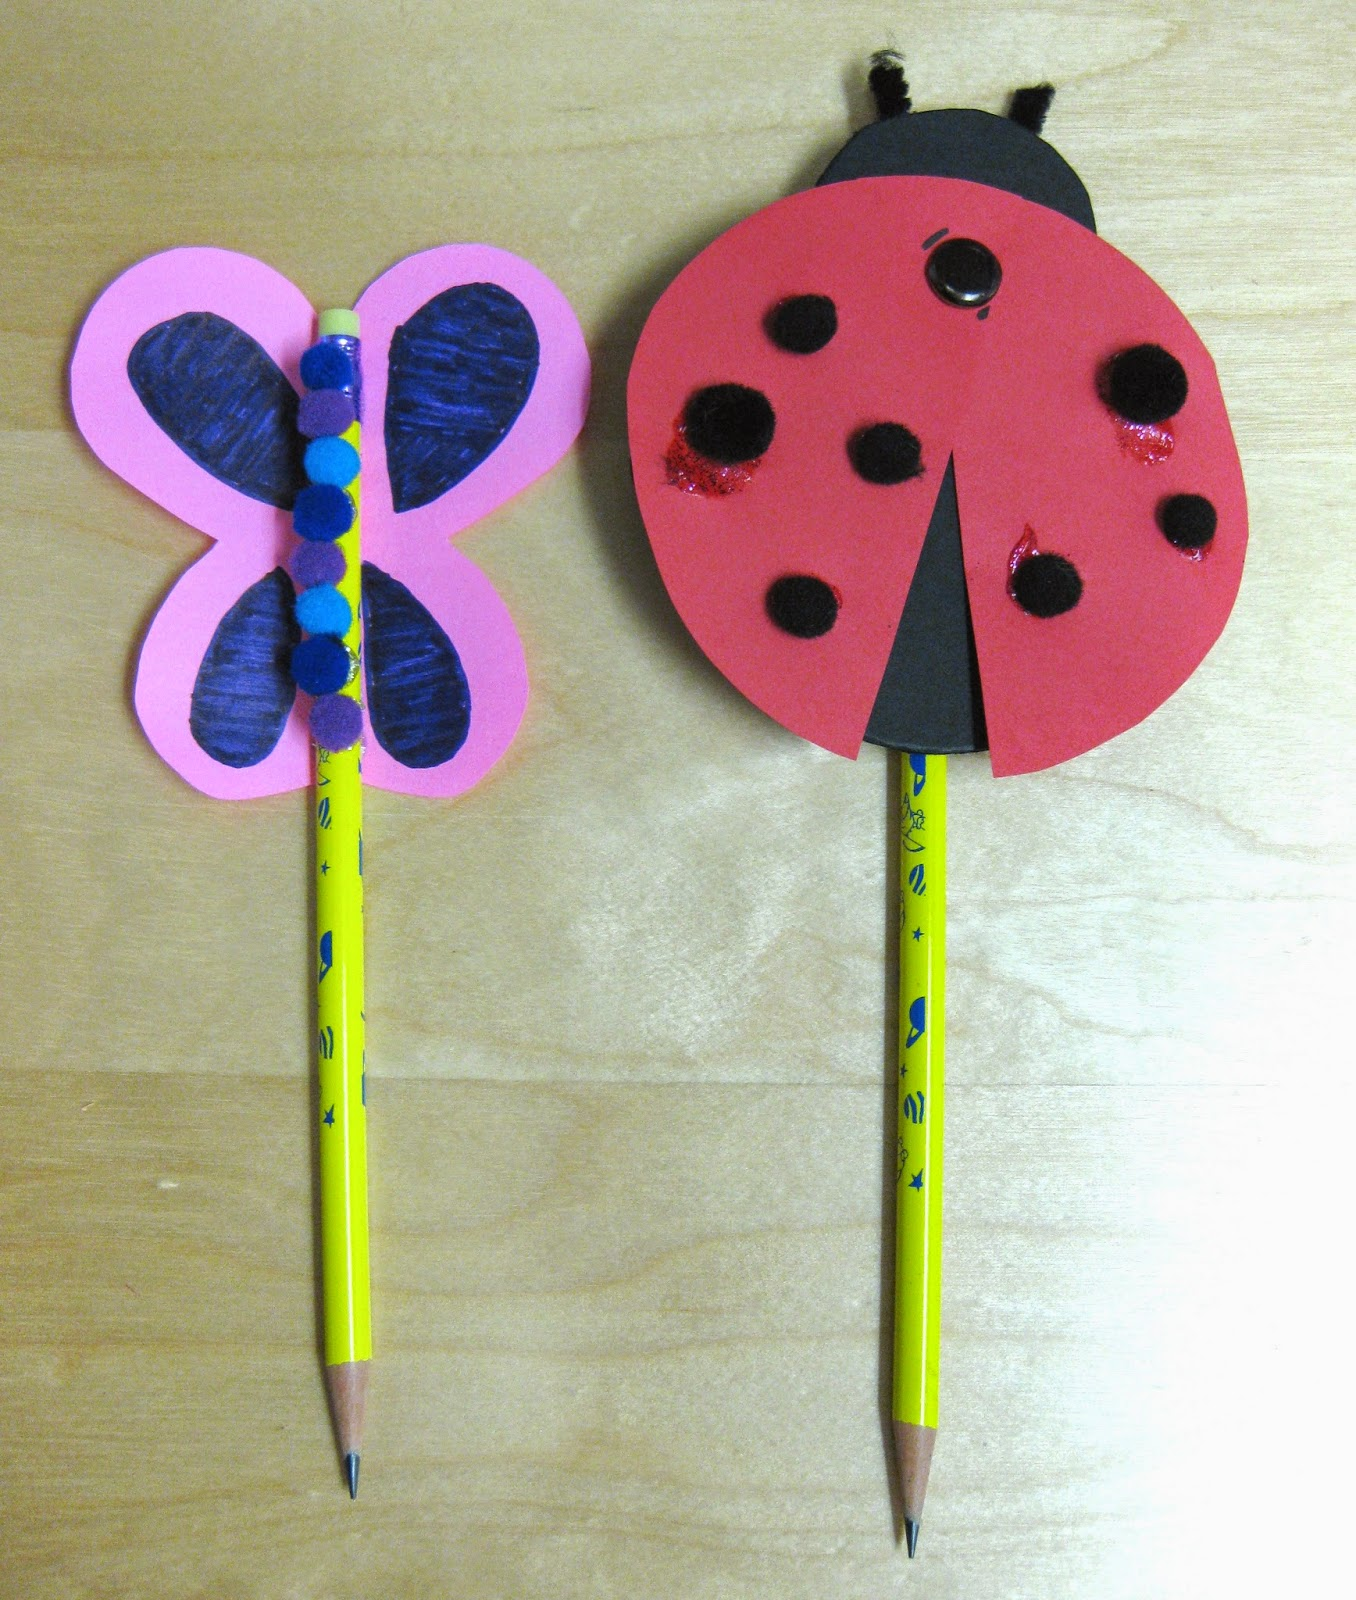 Easy Arts Crafts Ideas - Pencil craft ideas for kids